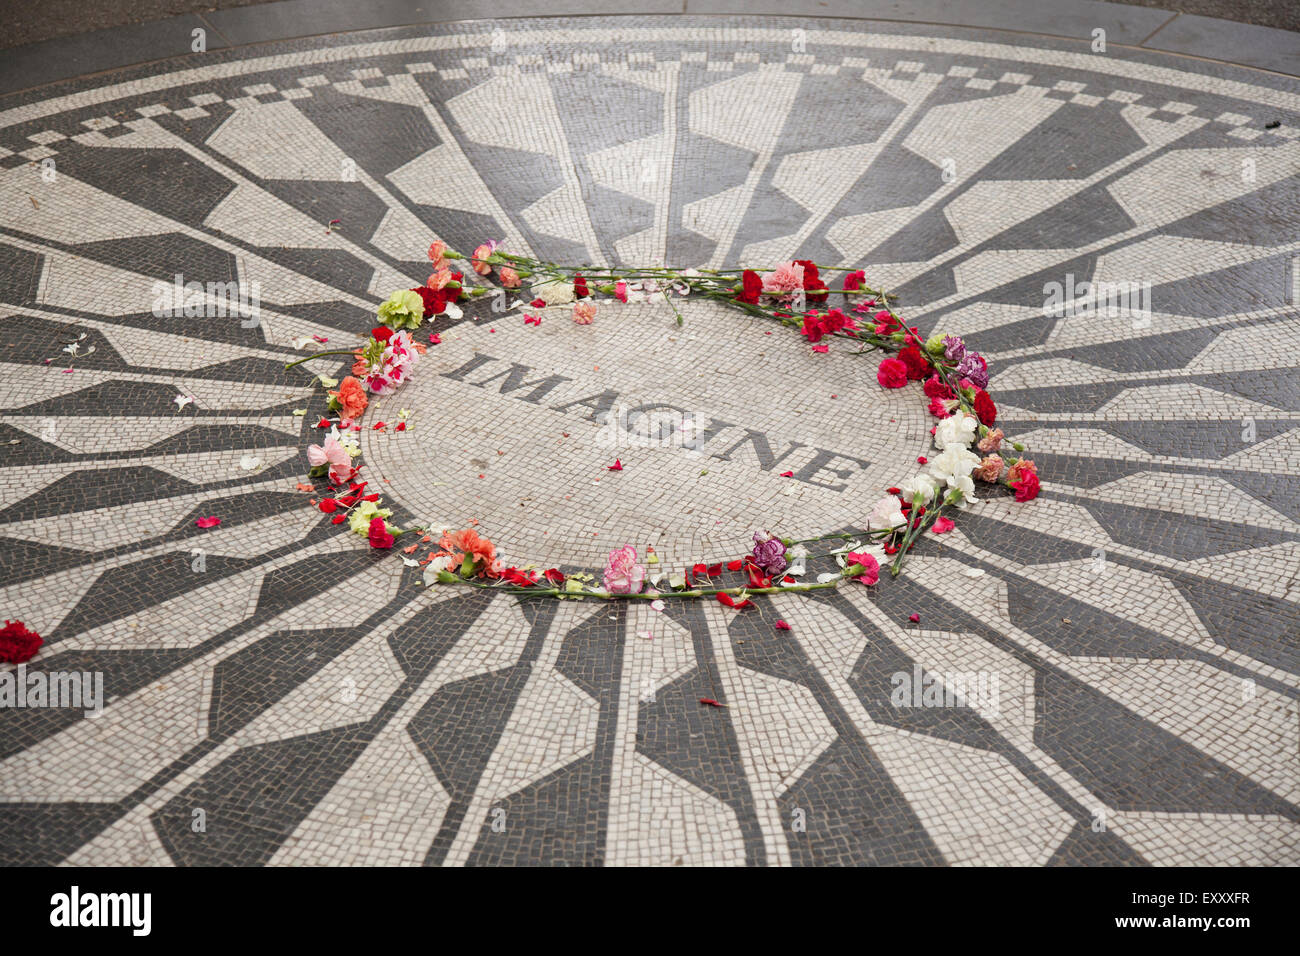 strawberry fields in central park new york city Stock Photo